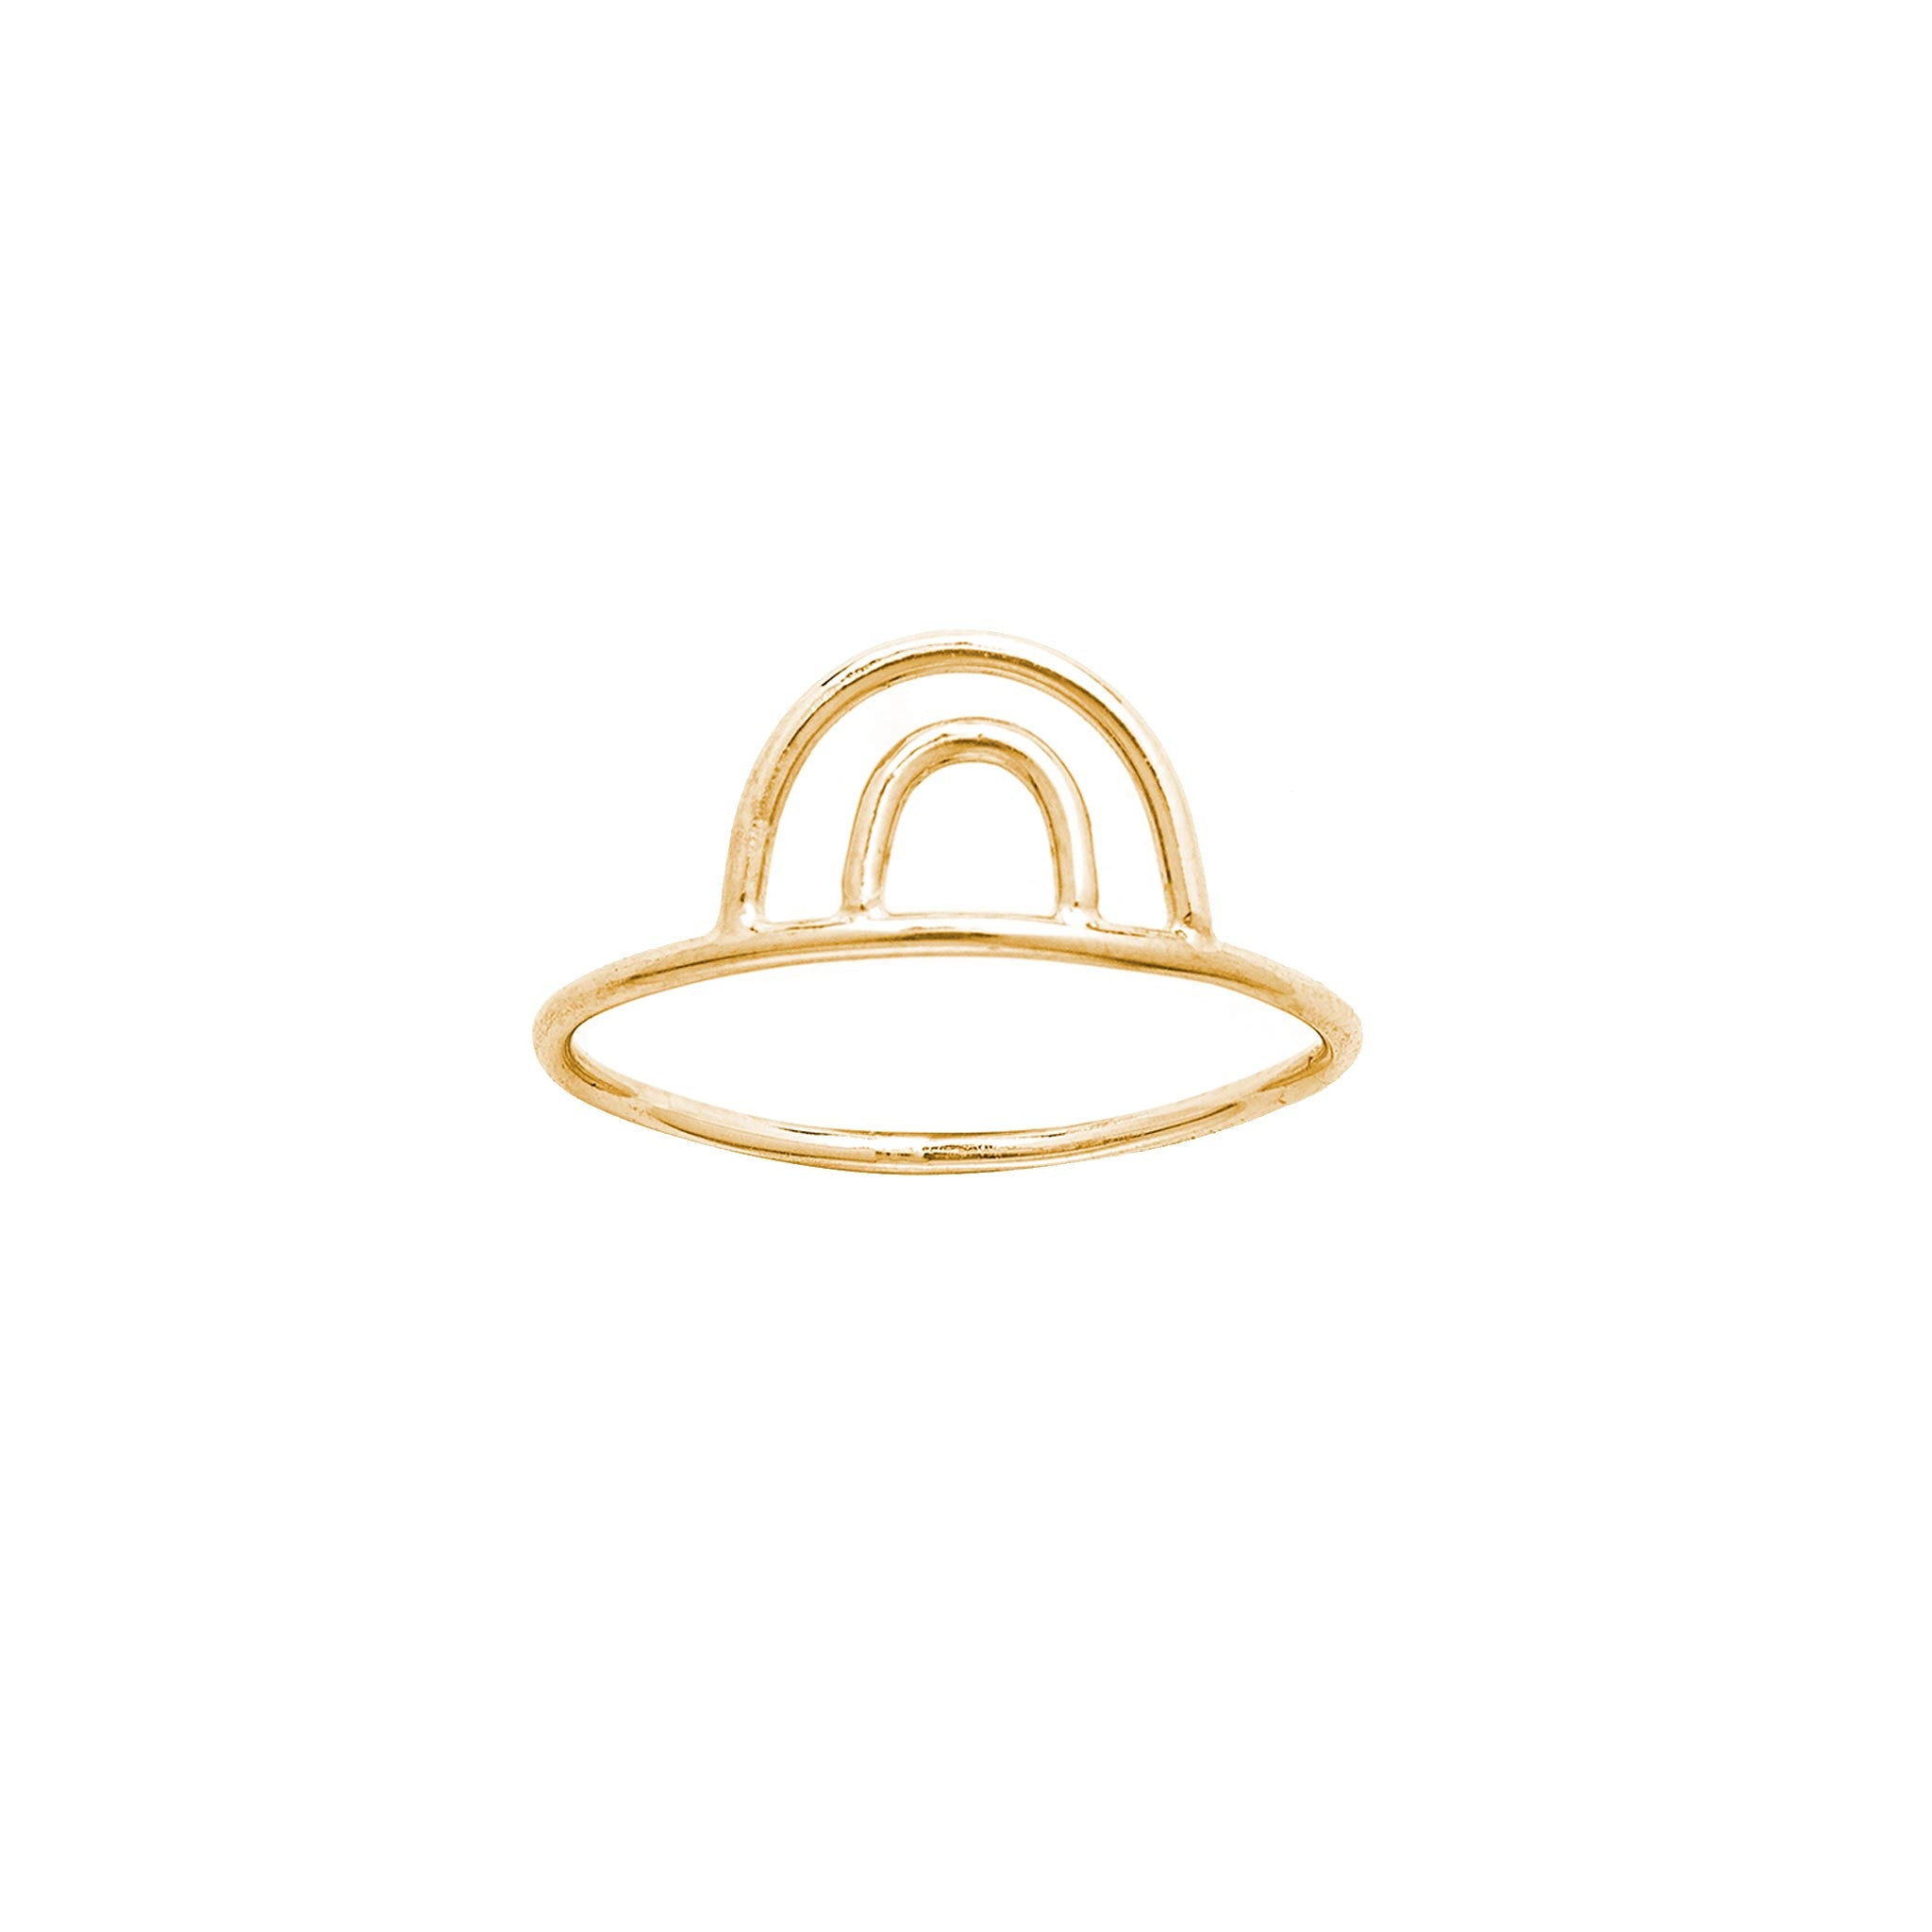 14k solid gold double arc ring